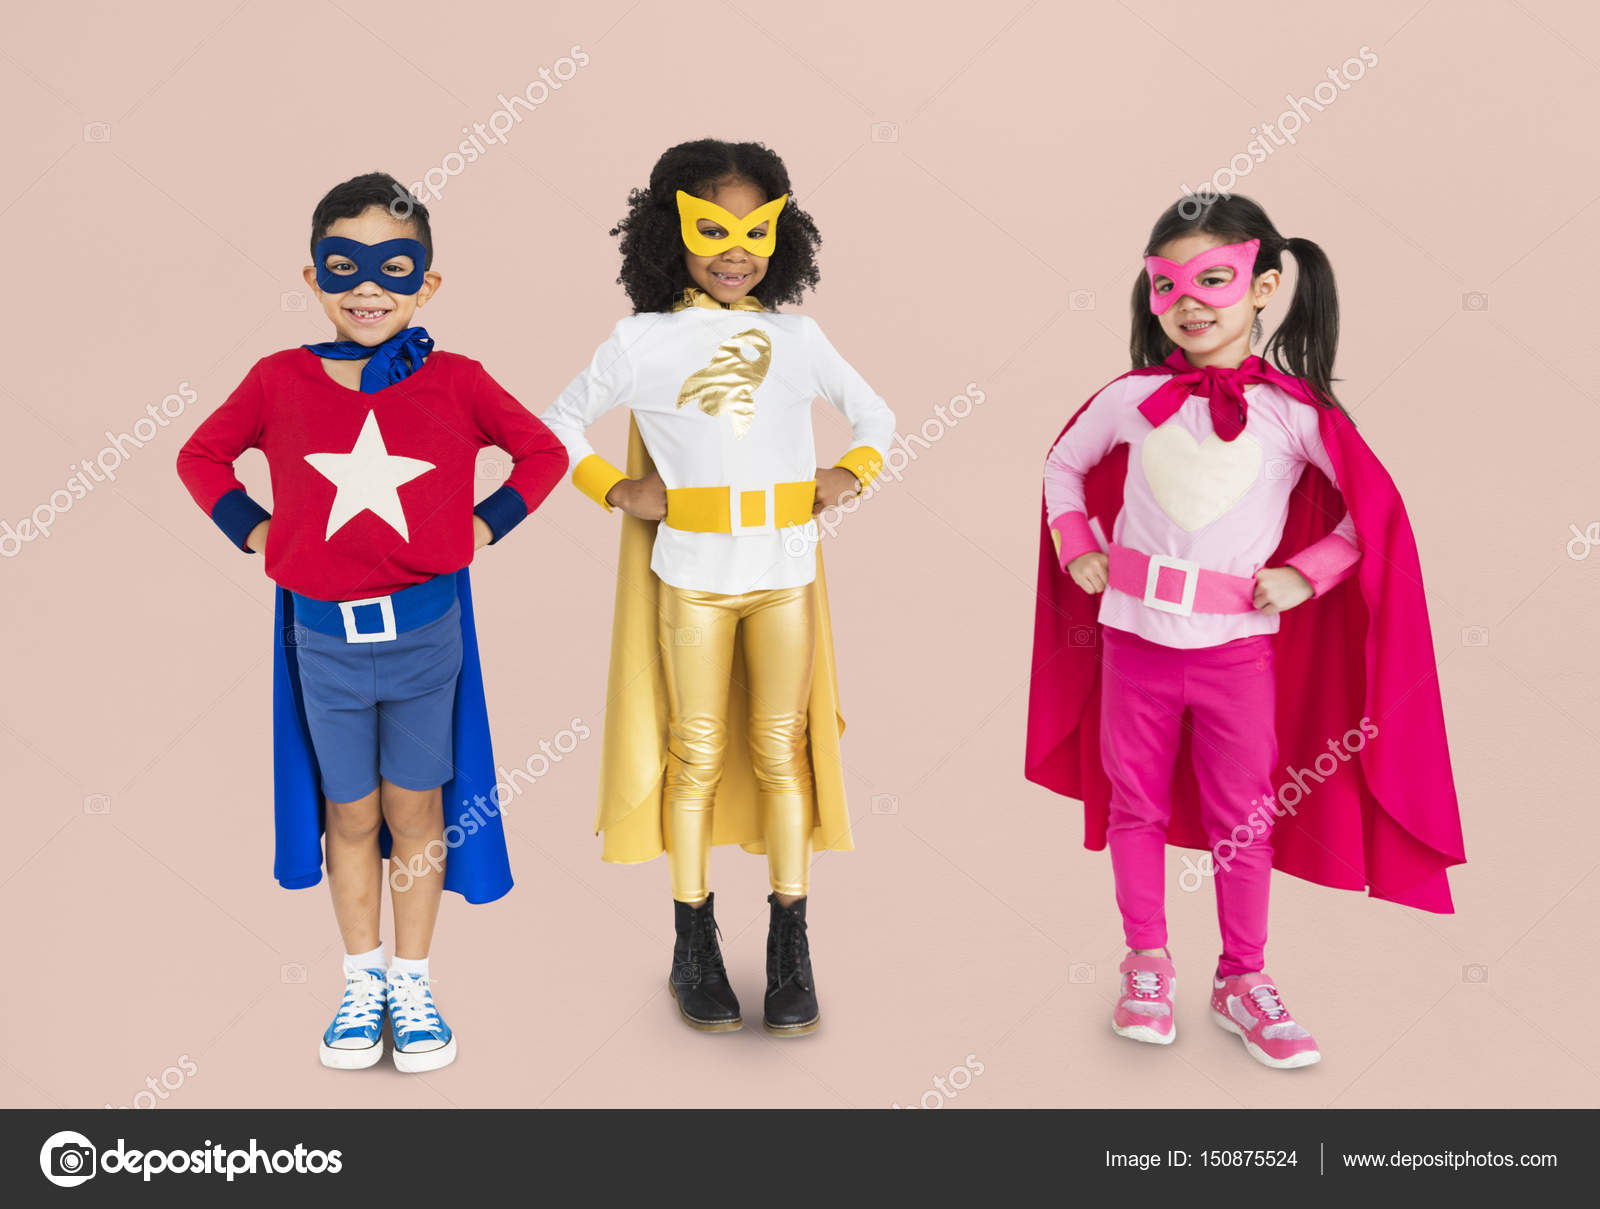 Children wearing superhero costumes u2014 Stock Photo  sc 1 st  Depositphotos & children wearing superhero costumes u2014 Stock Photo © Rawpixel #150875524